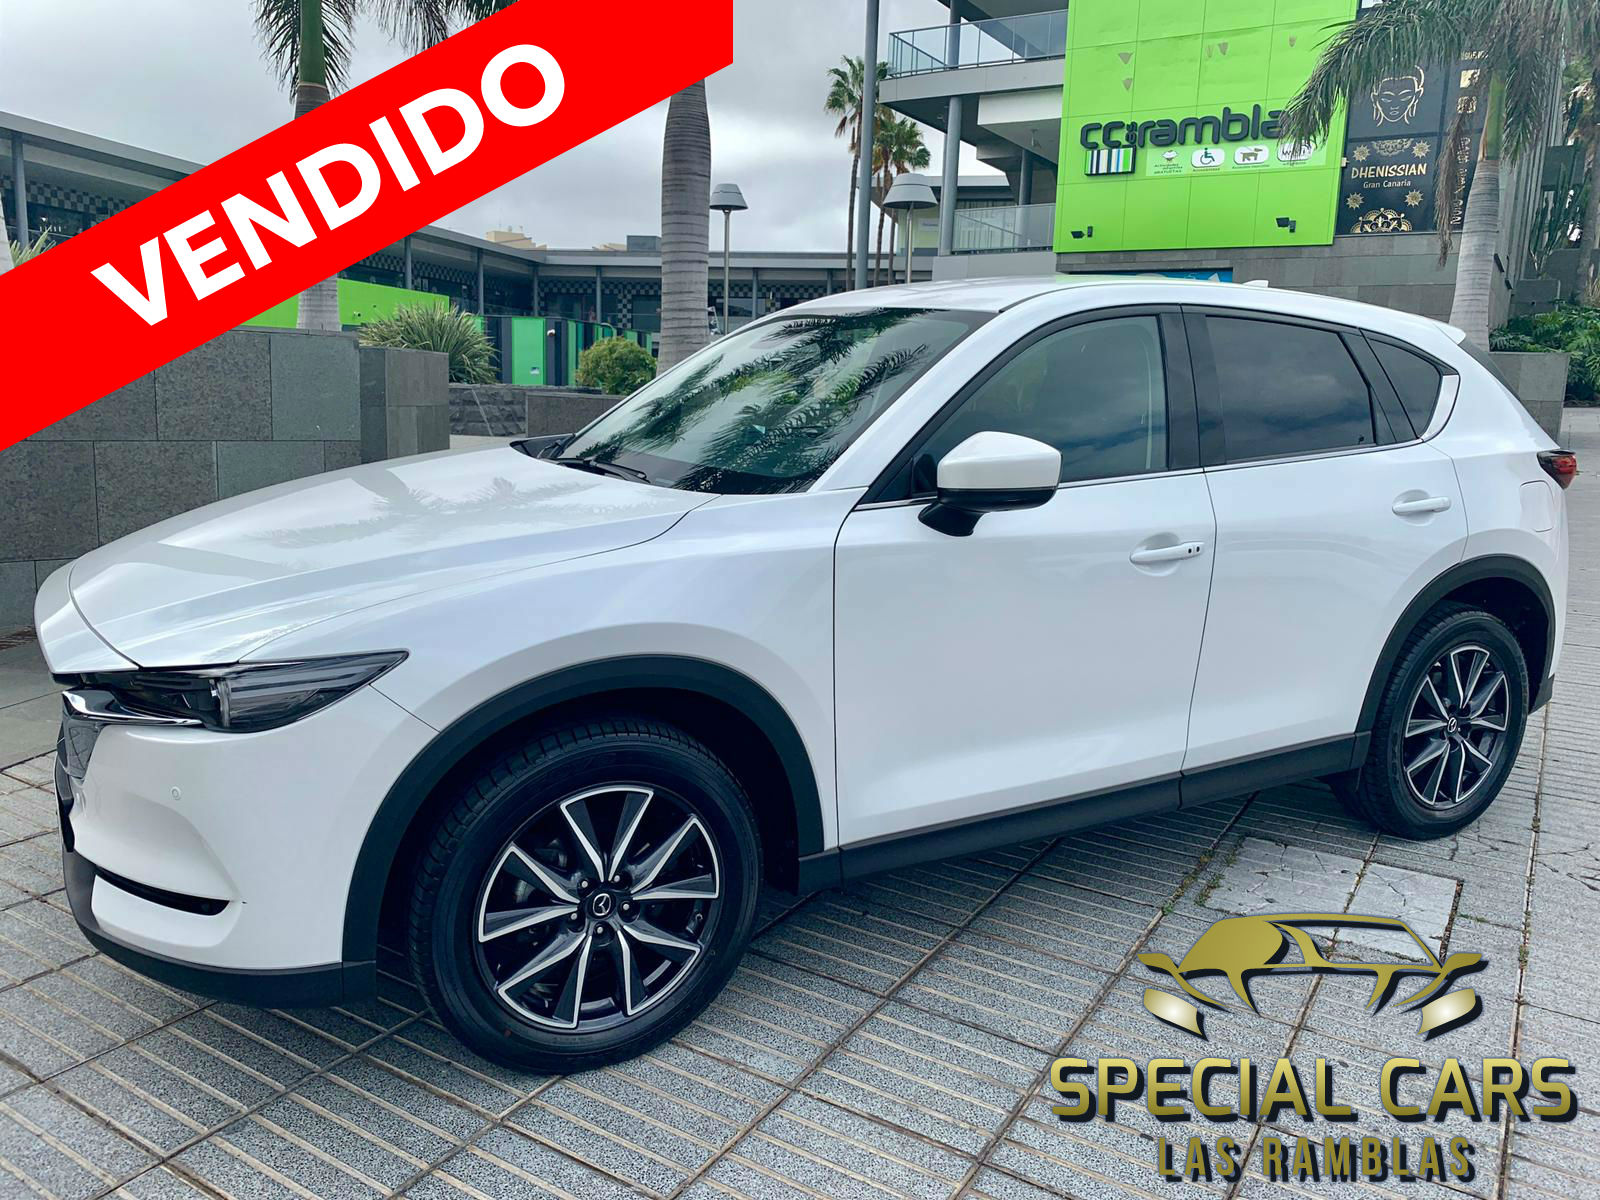 CX5 2.2 LUXURY BLANCO MAR19 1 VENDIDO